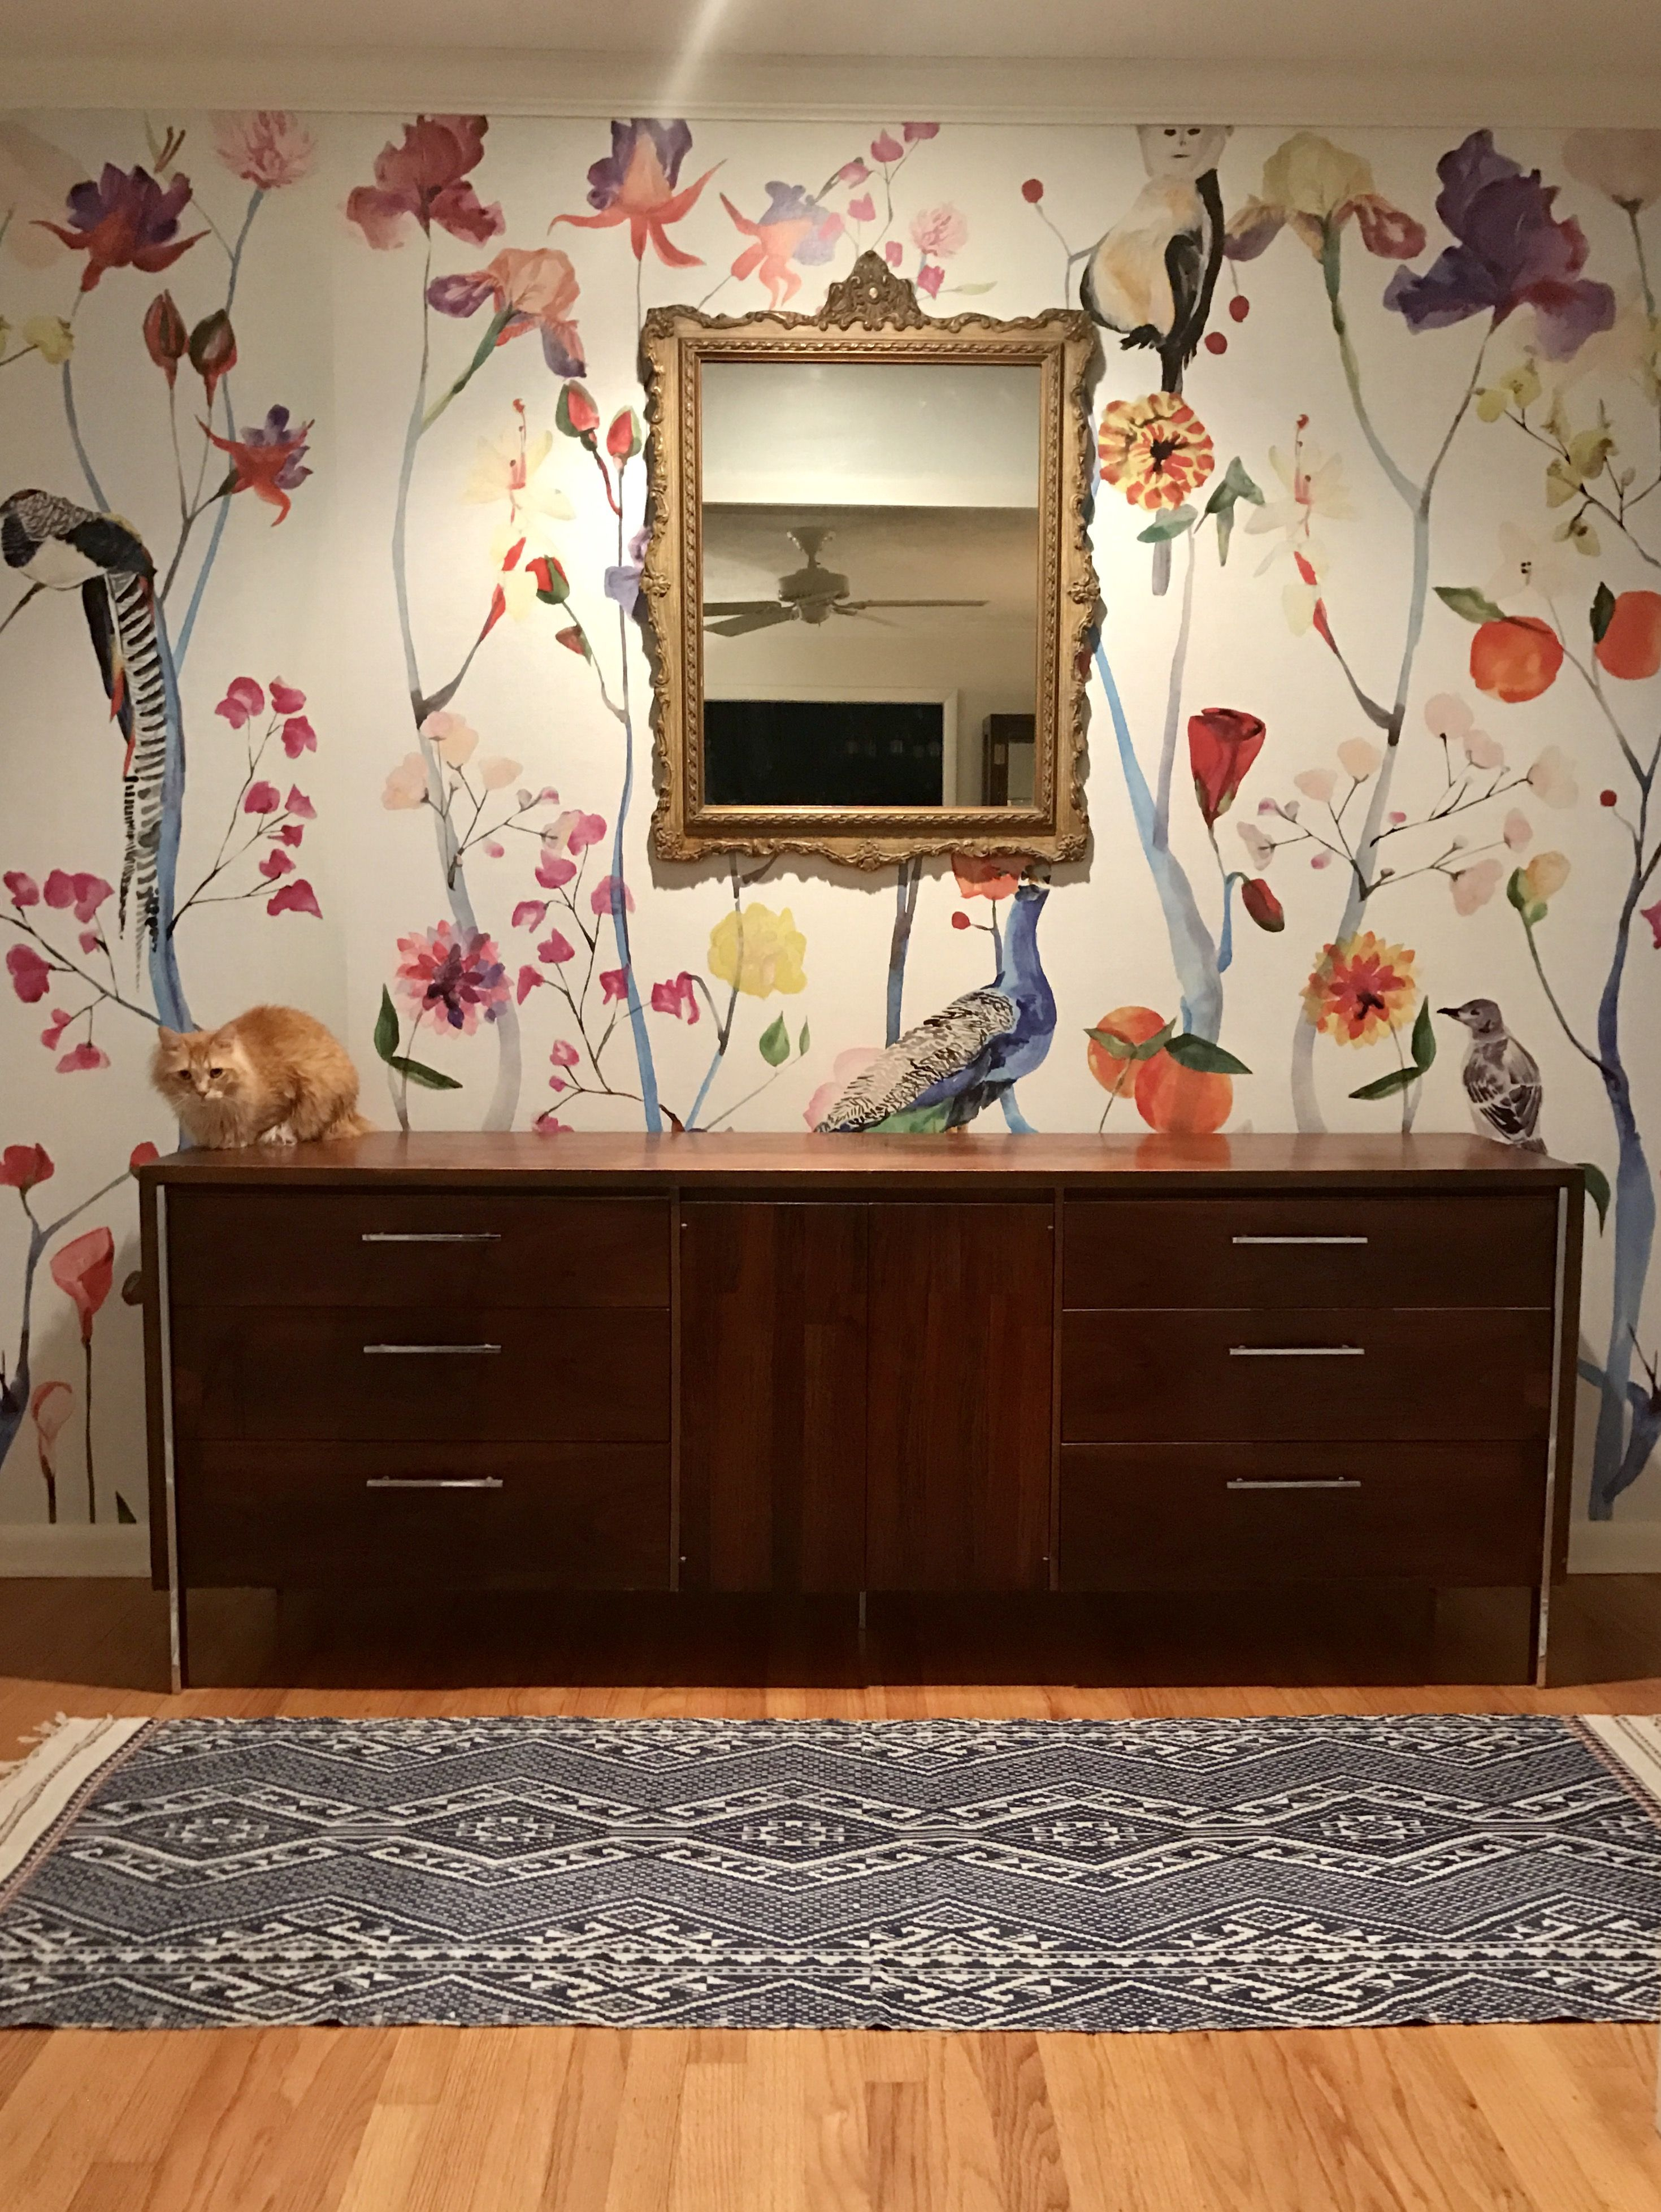 Foyer with Antropology Wallpaper Mural and mid century modern credenza